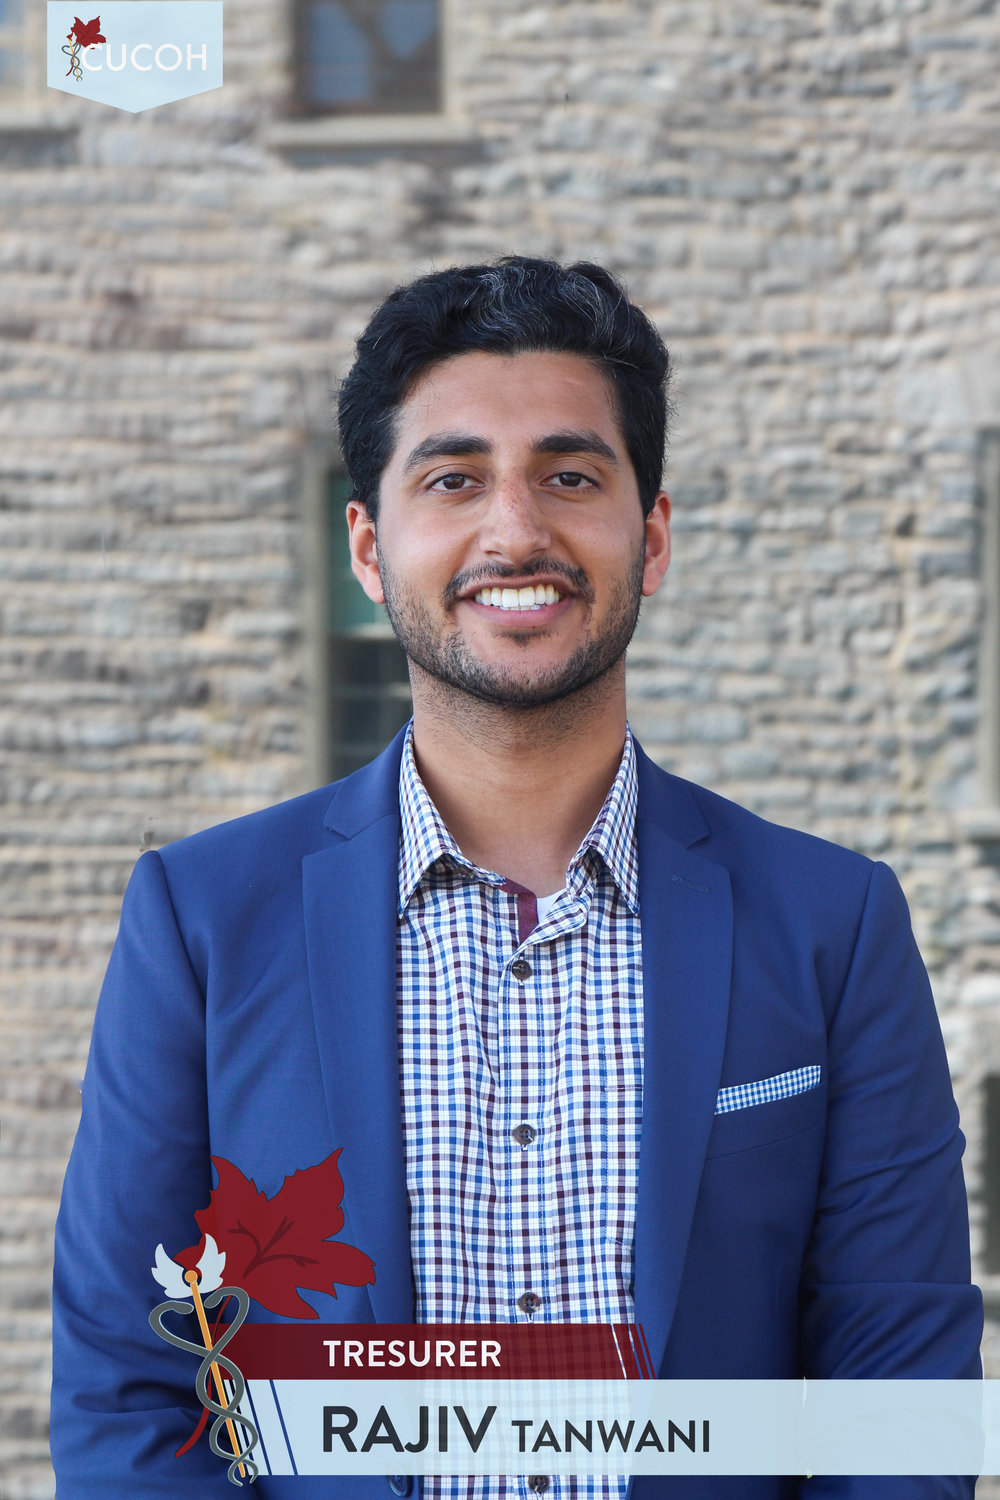 Rajiv Tanwani, Treasurer